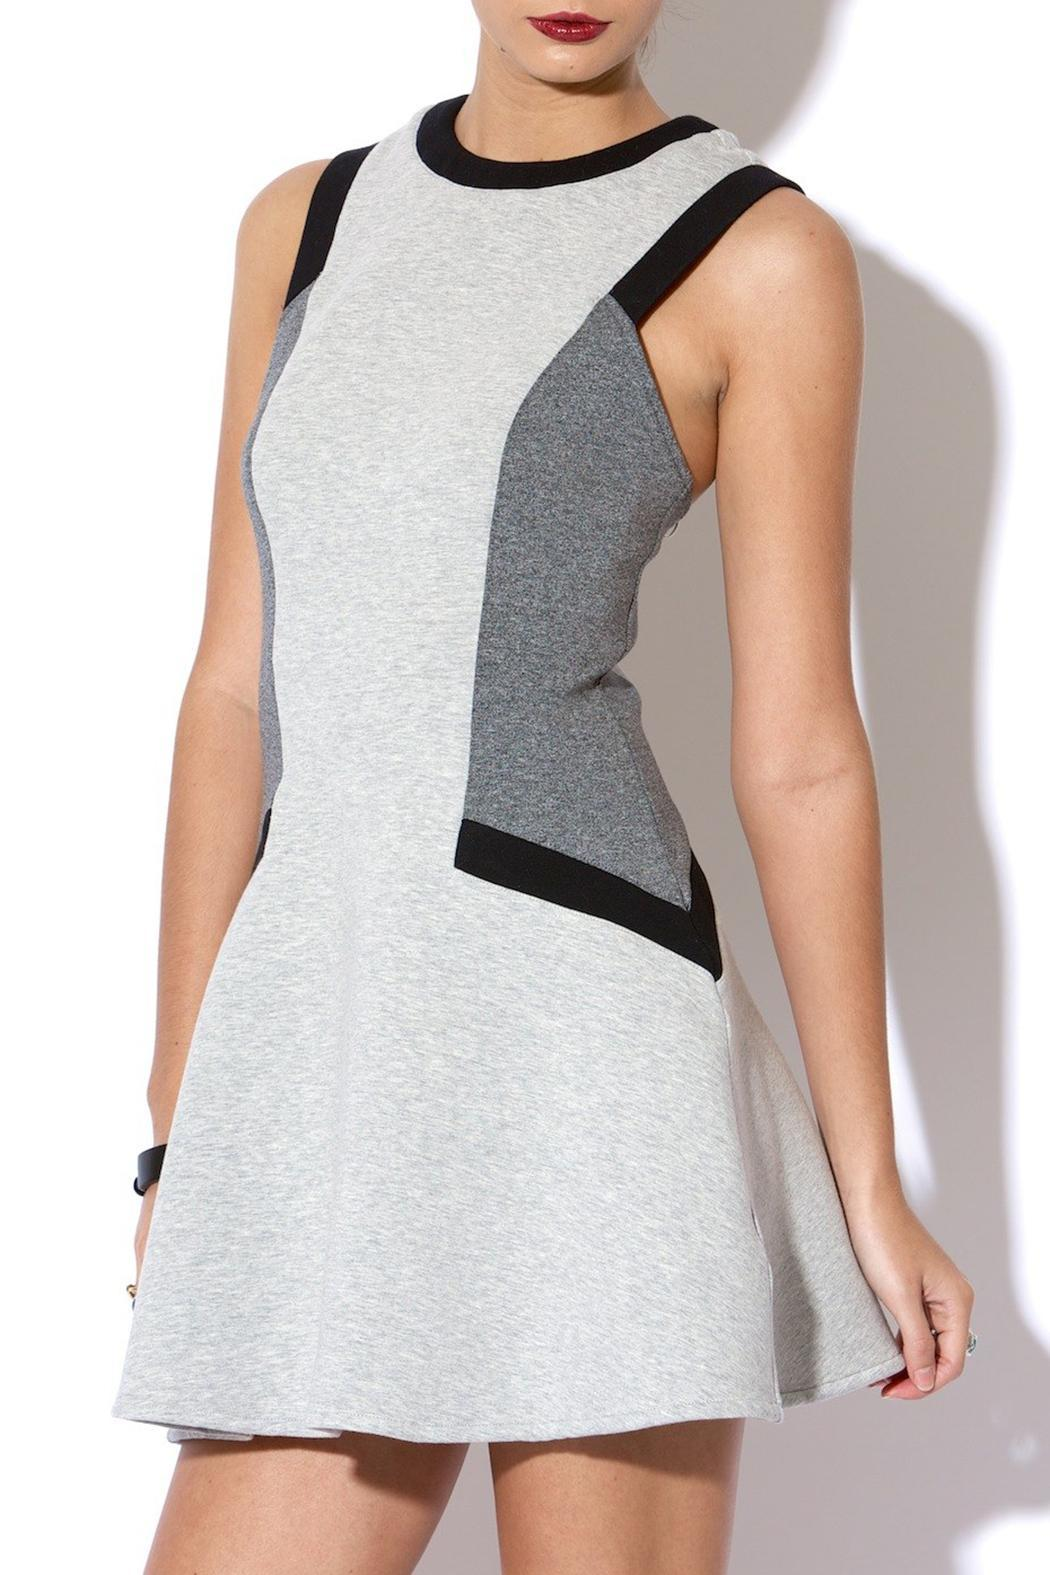 C/MEO COLLECTIVE Nightlight Dress - Front Full Image